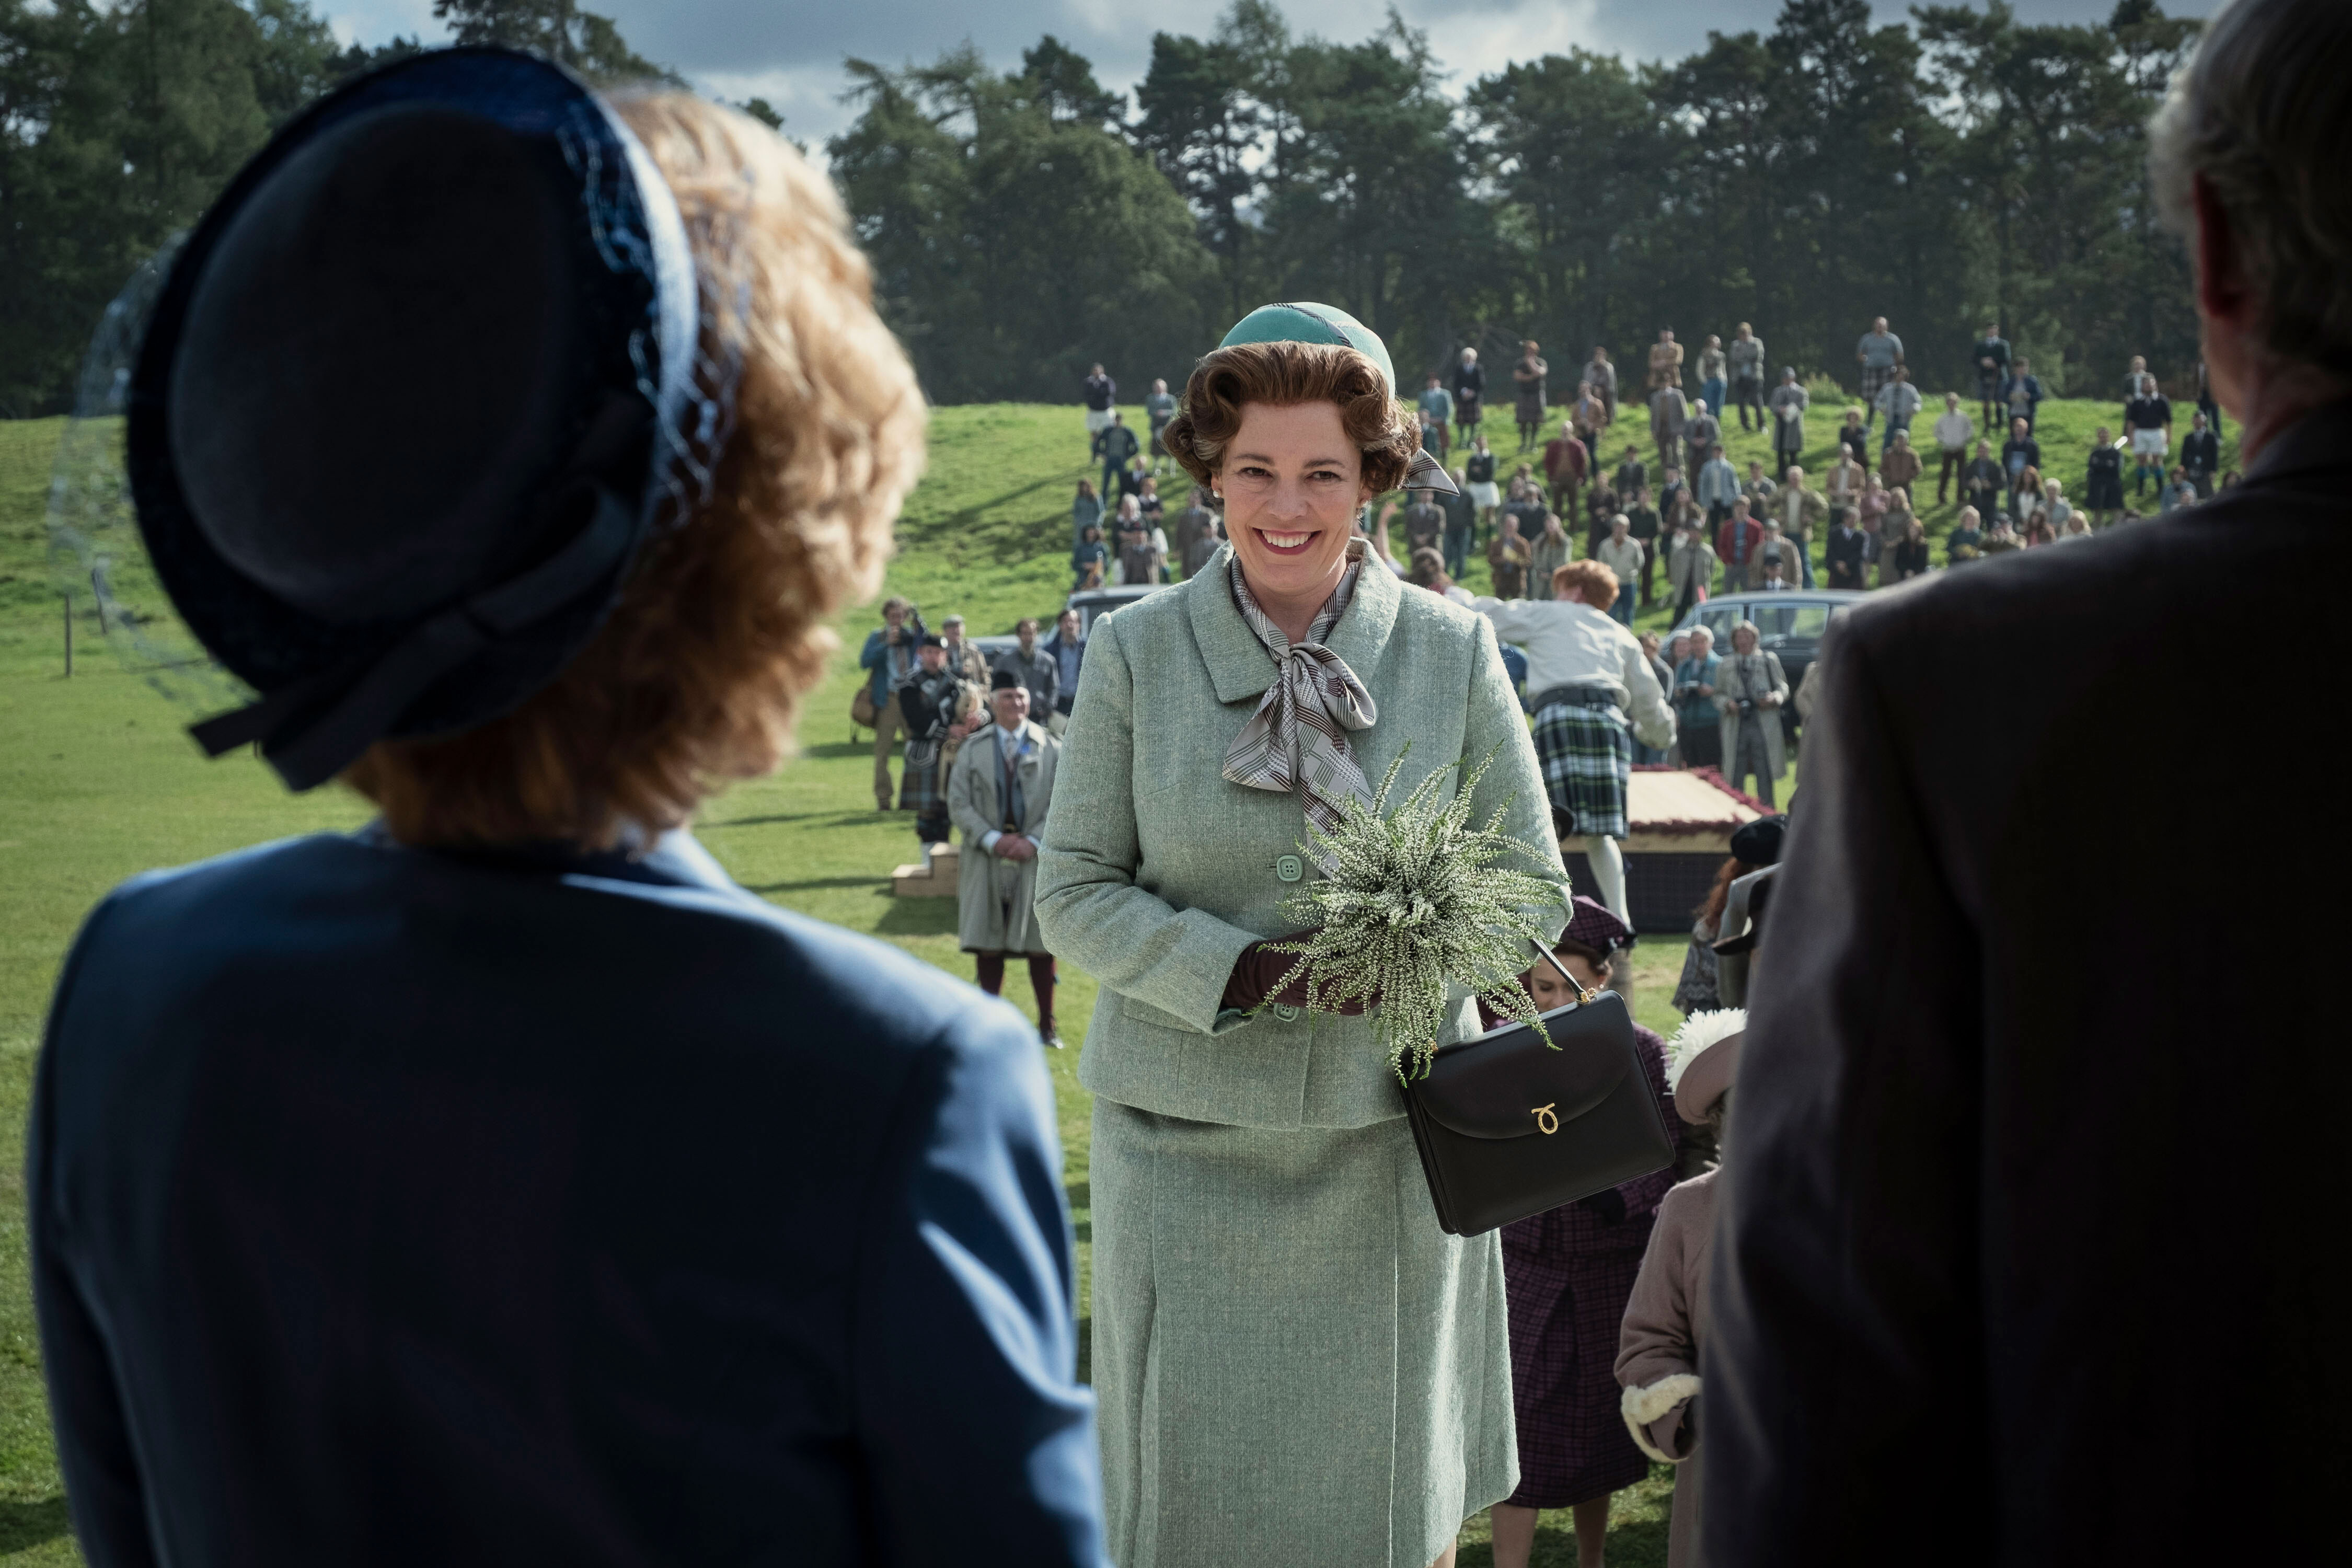 Analysis: Emmys honor 'The Crown,' 'Ted Lasso' and 'Queen's Gambit' as Netflix makes history